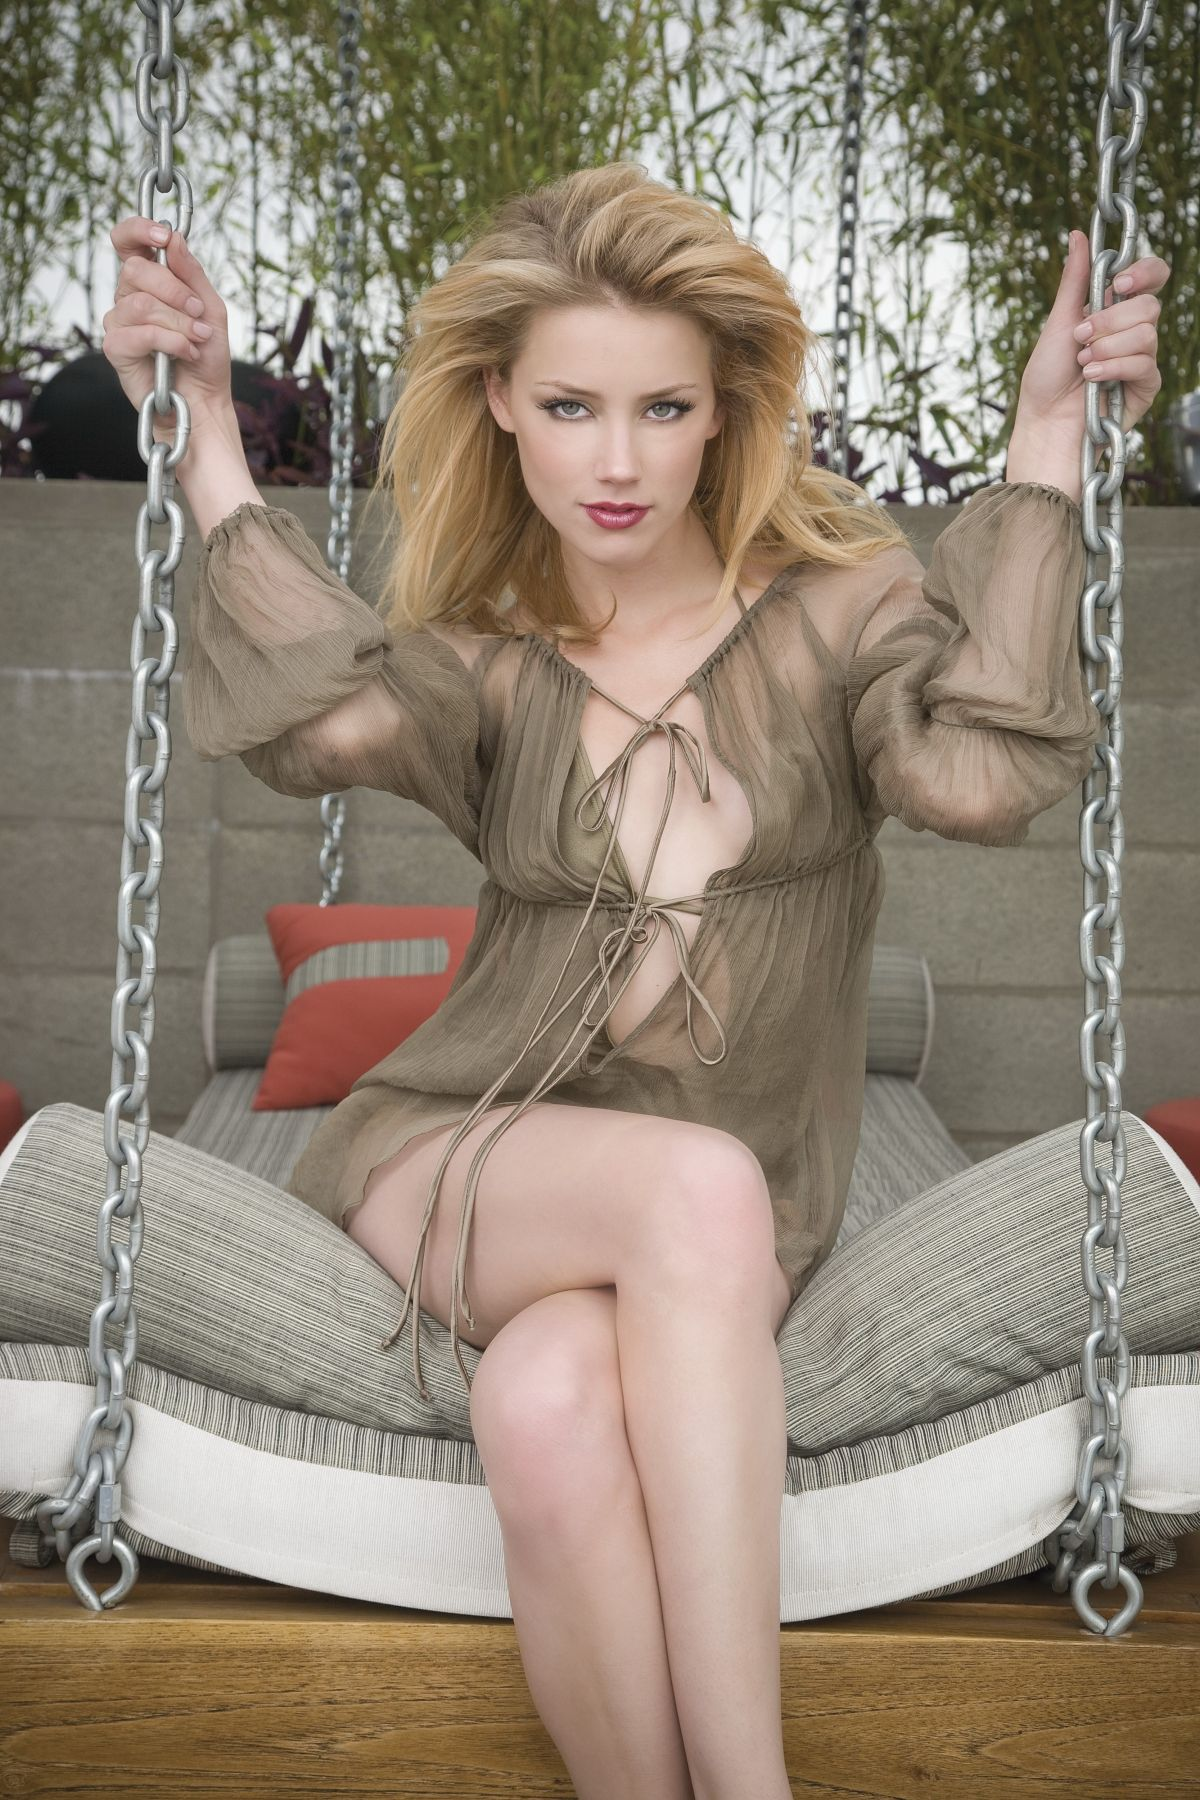 AMBER HEARD - Saturday Night Magazine 2008 Photoshoot by Bobby Quillard